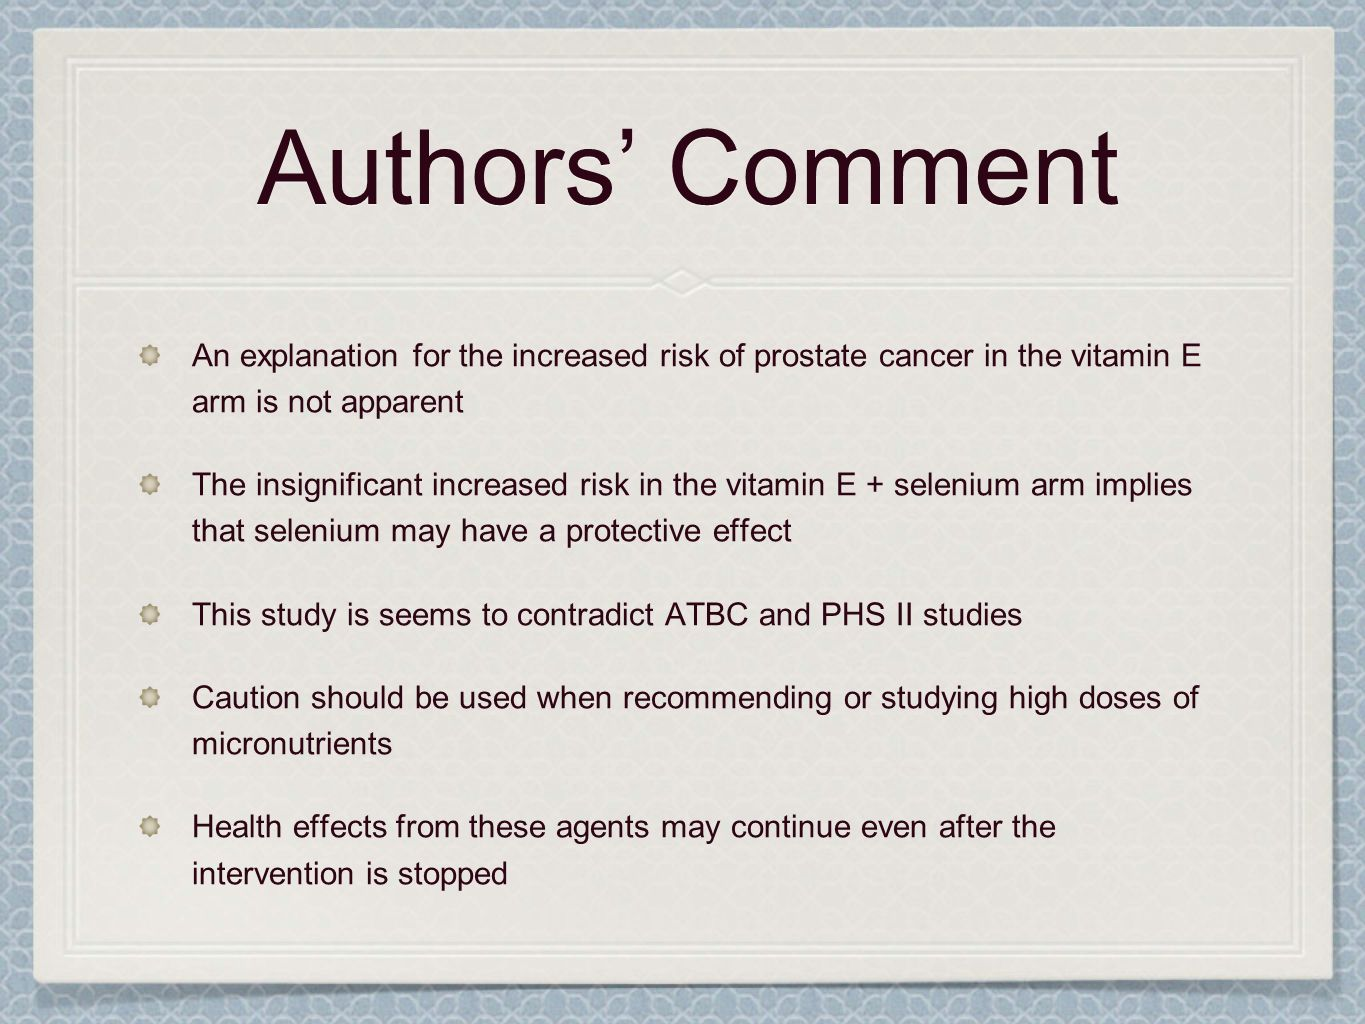 Authors' Comment An explanation for the increased risk of prostate cancer in the vitamin E arm is not apparent.